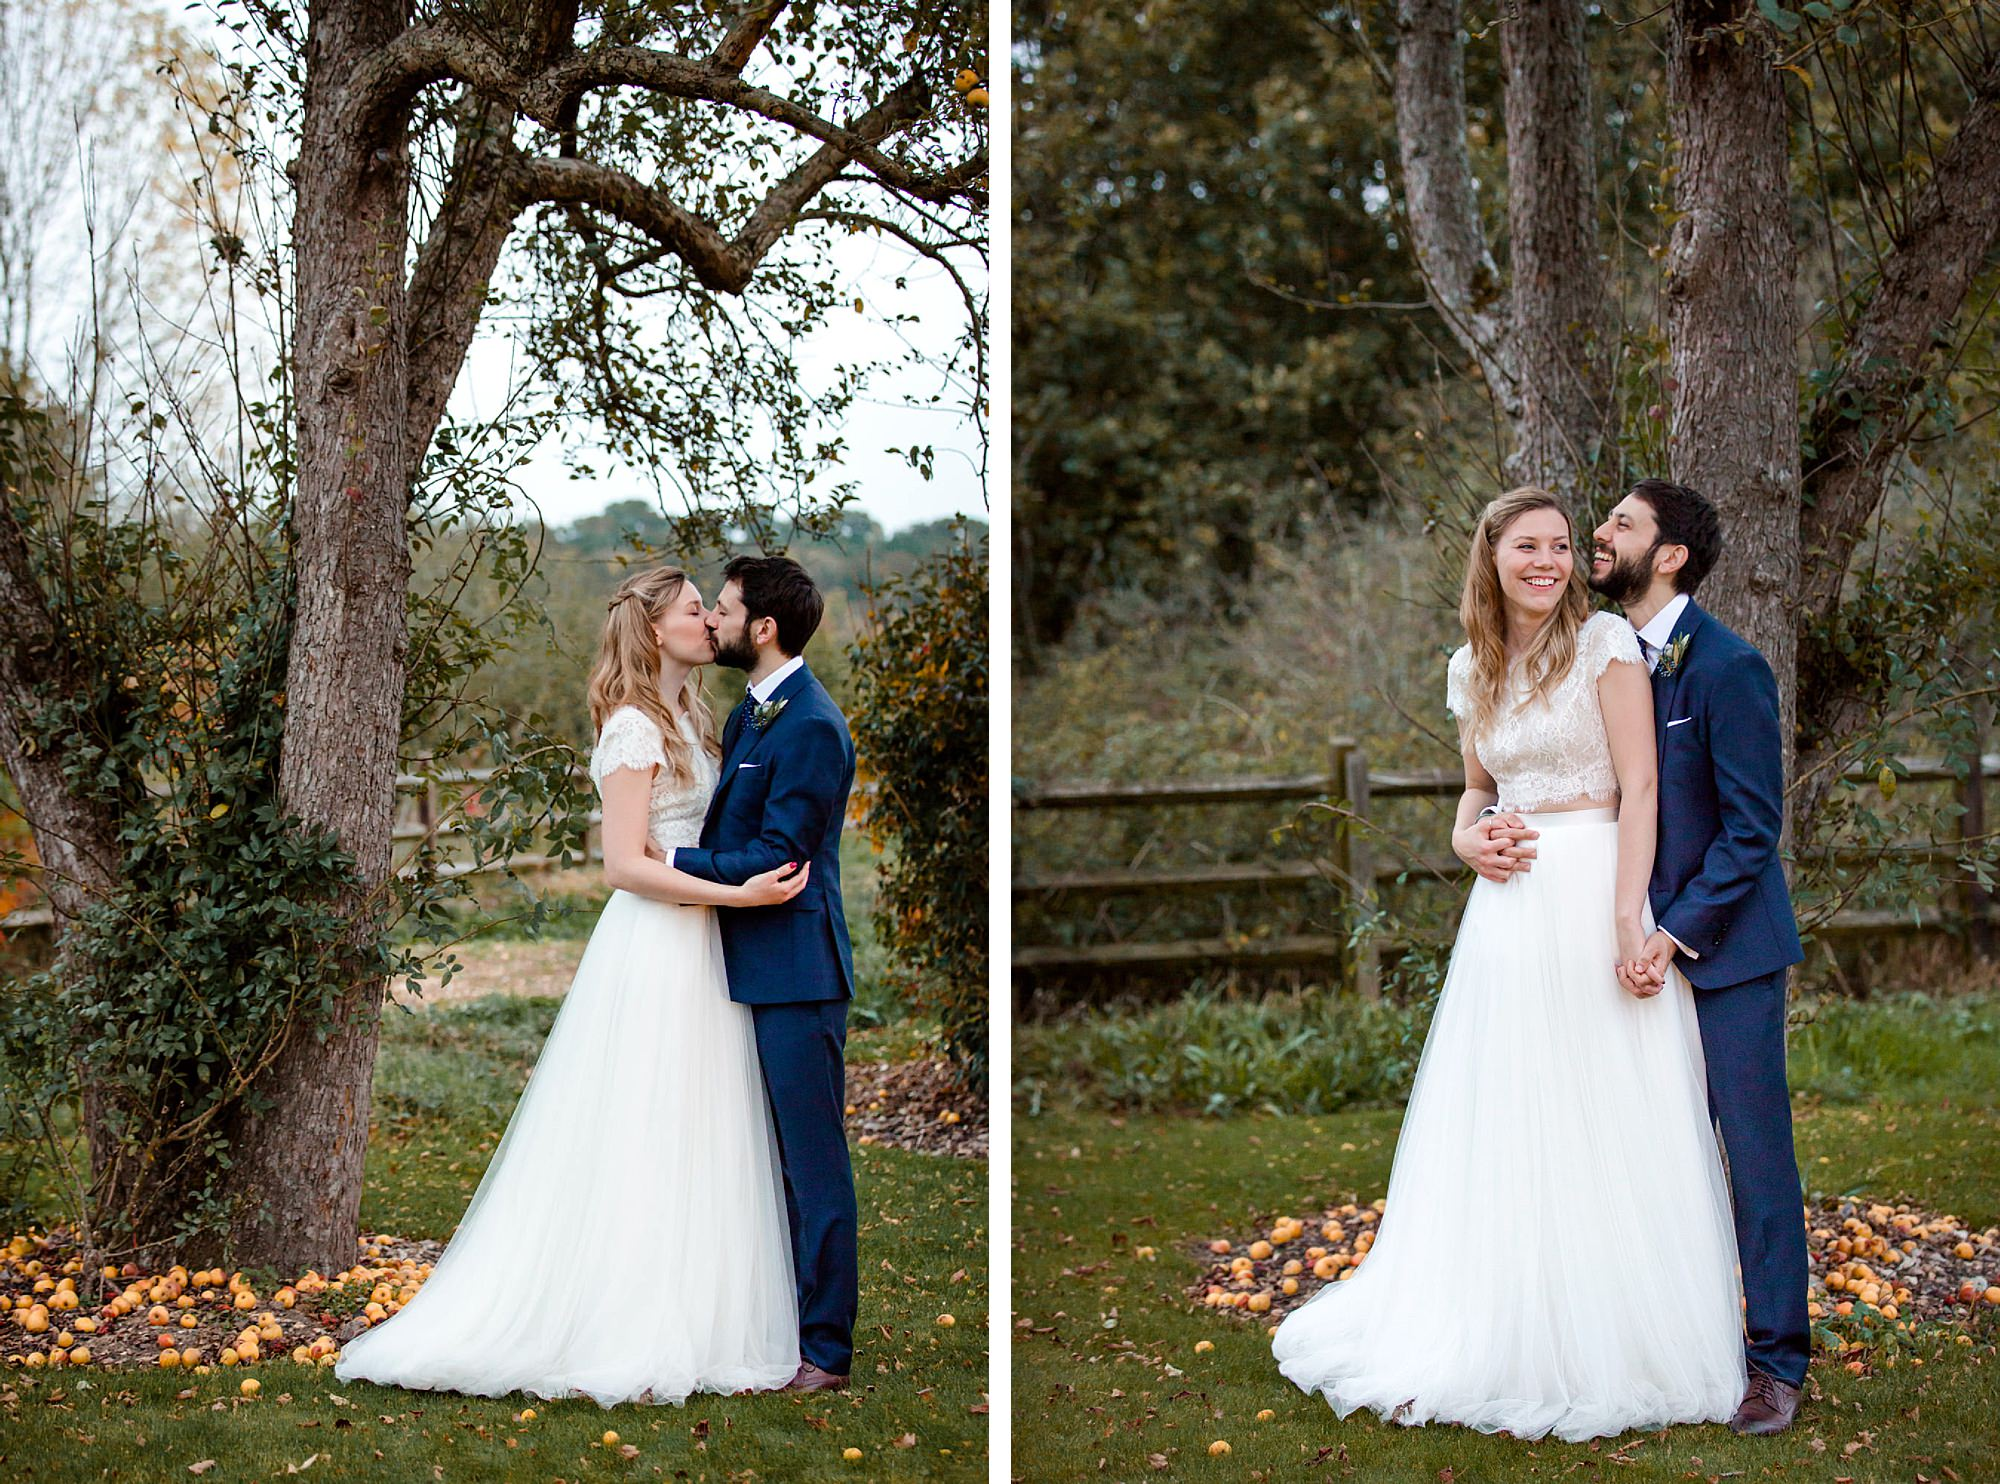 shaw house wedding autumn posterity of bride and groom with apple tree